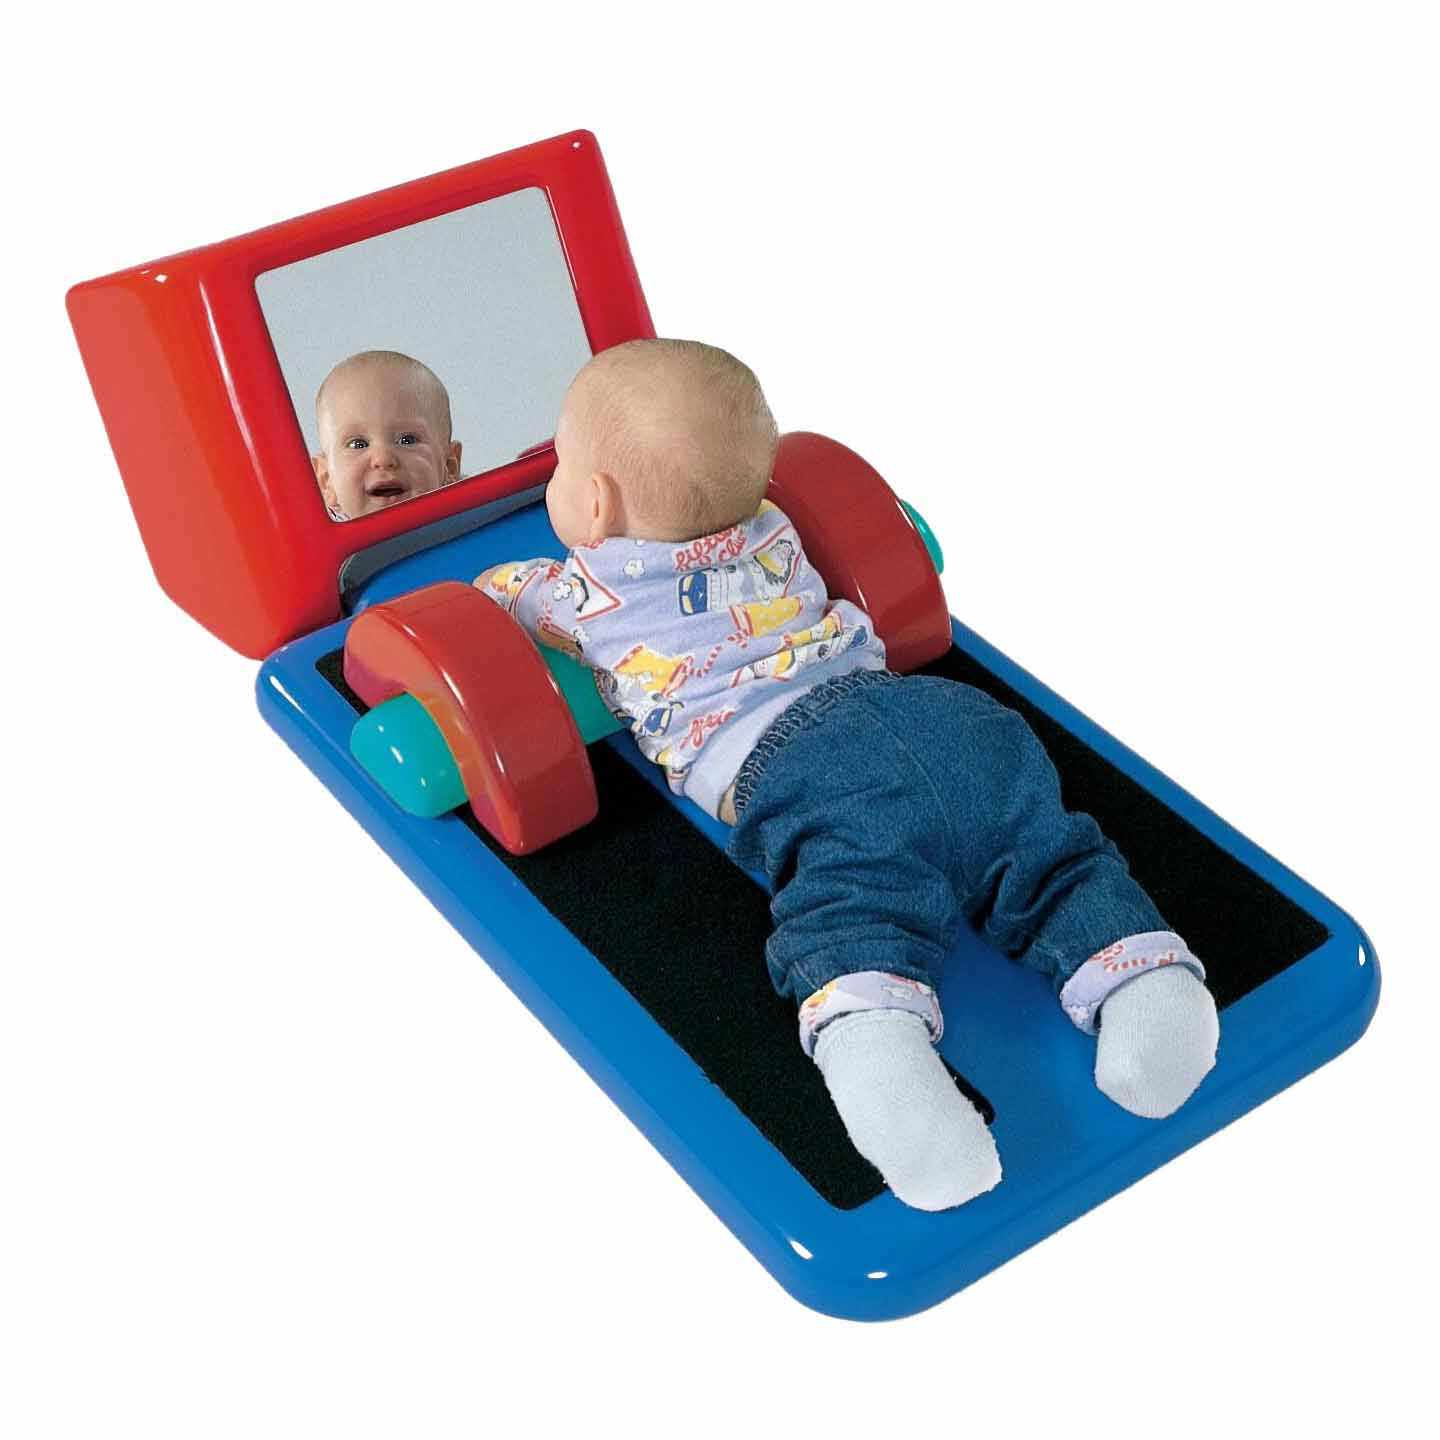 Tumble Forms Tray With Mirror For Tadpole Positioner | Tumble Forms 4772TM